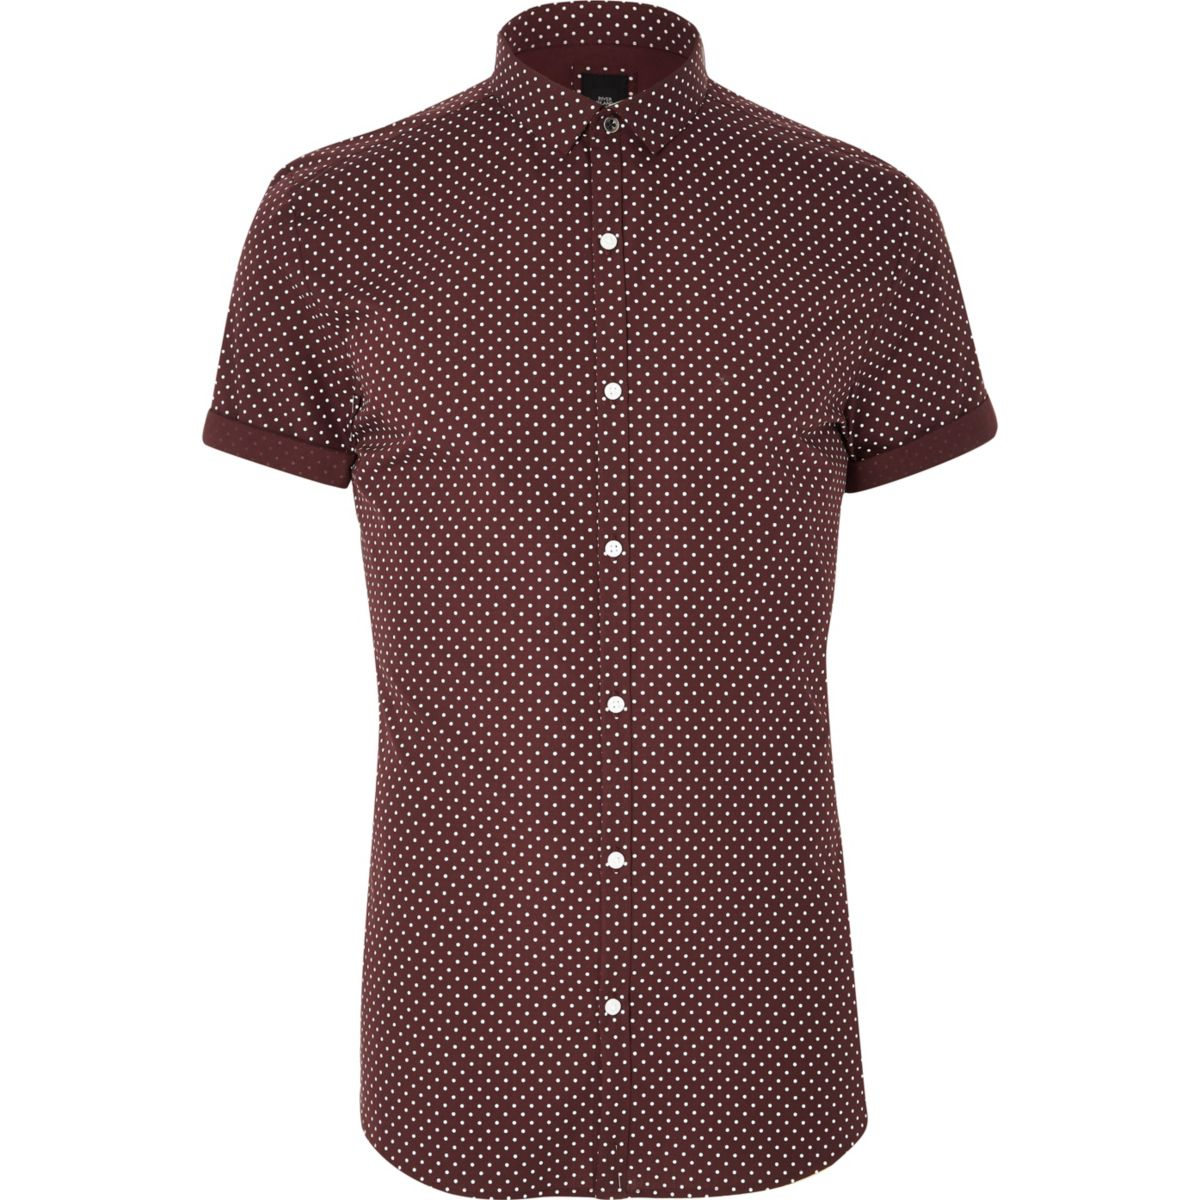 Burgundy polka dot short sleeve shirt shirts sale men for Mens polka dot shirt short sleeve